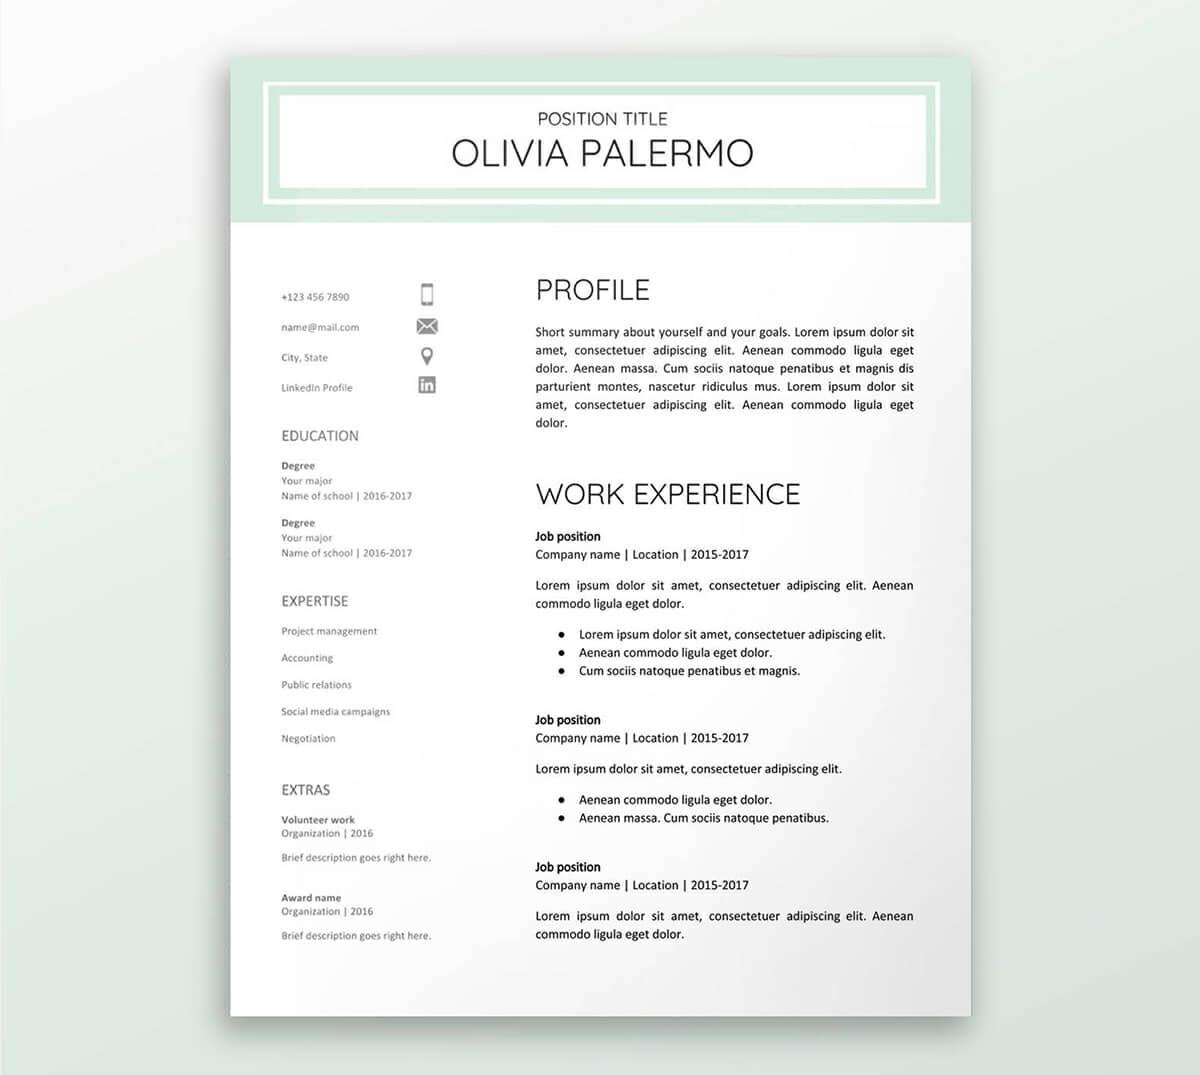 génial green google documents resume template